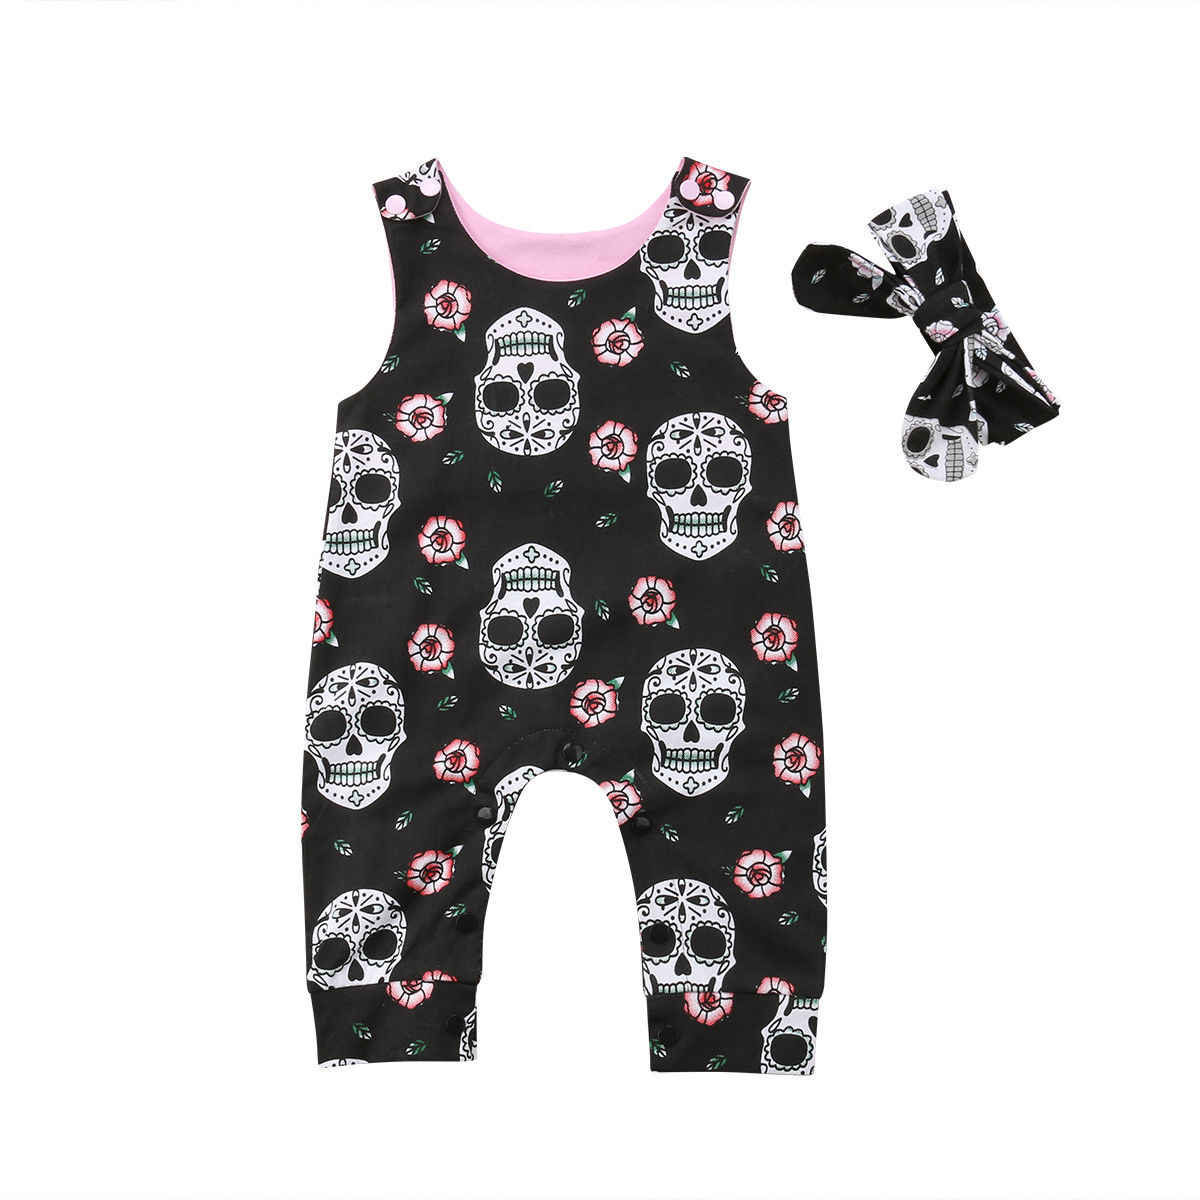 465995476f6c Halloween Newborn Baby Rompers Boys Girls Skull Flower Romper Jumpsuit 2PCS Outfit  Costume Holiday Cute Baby